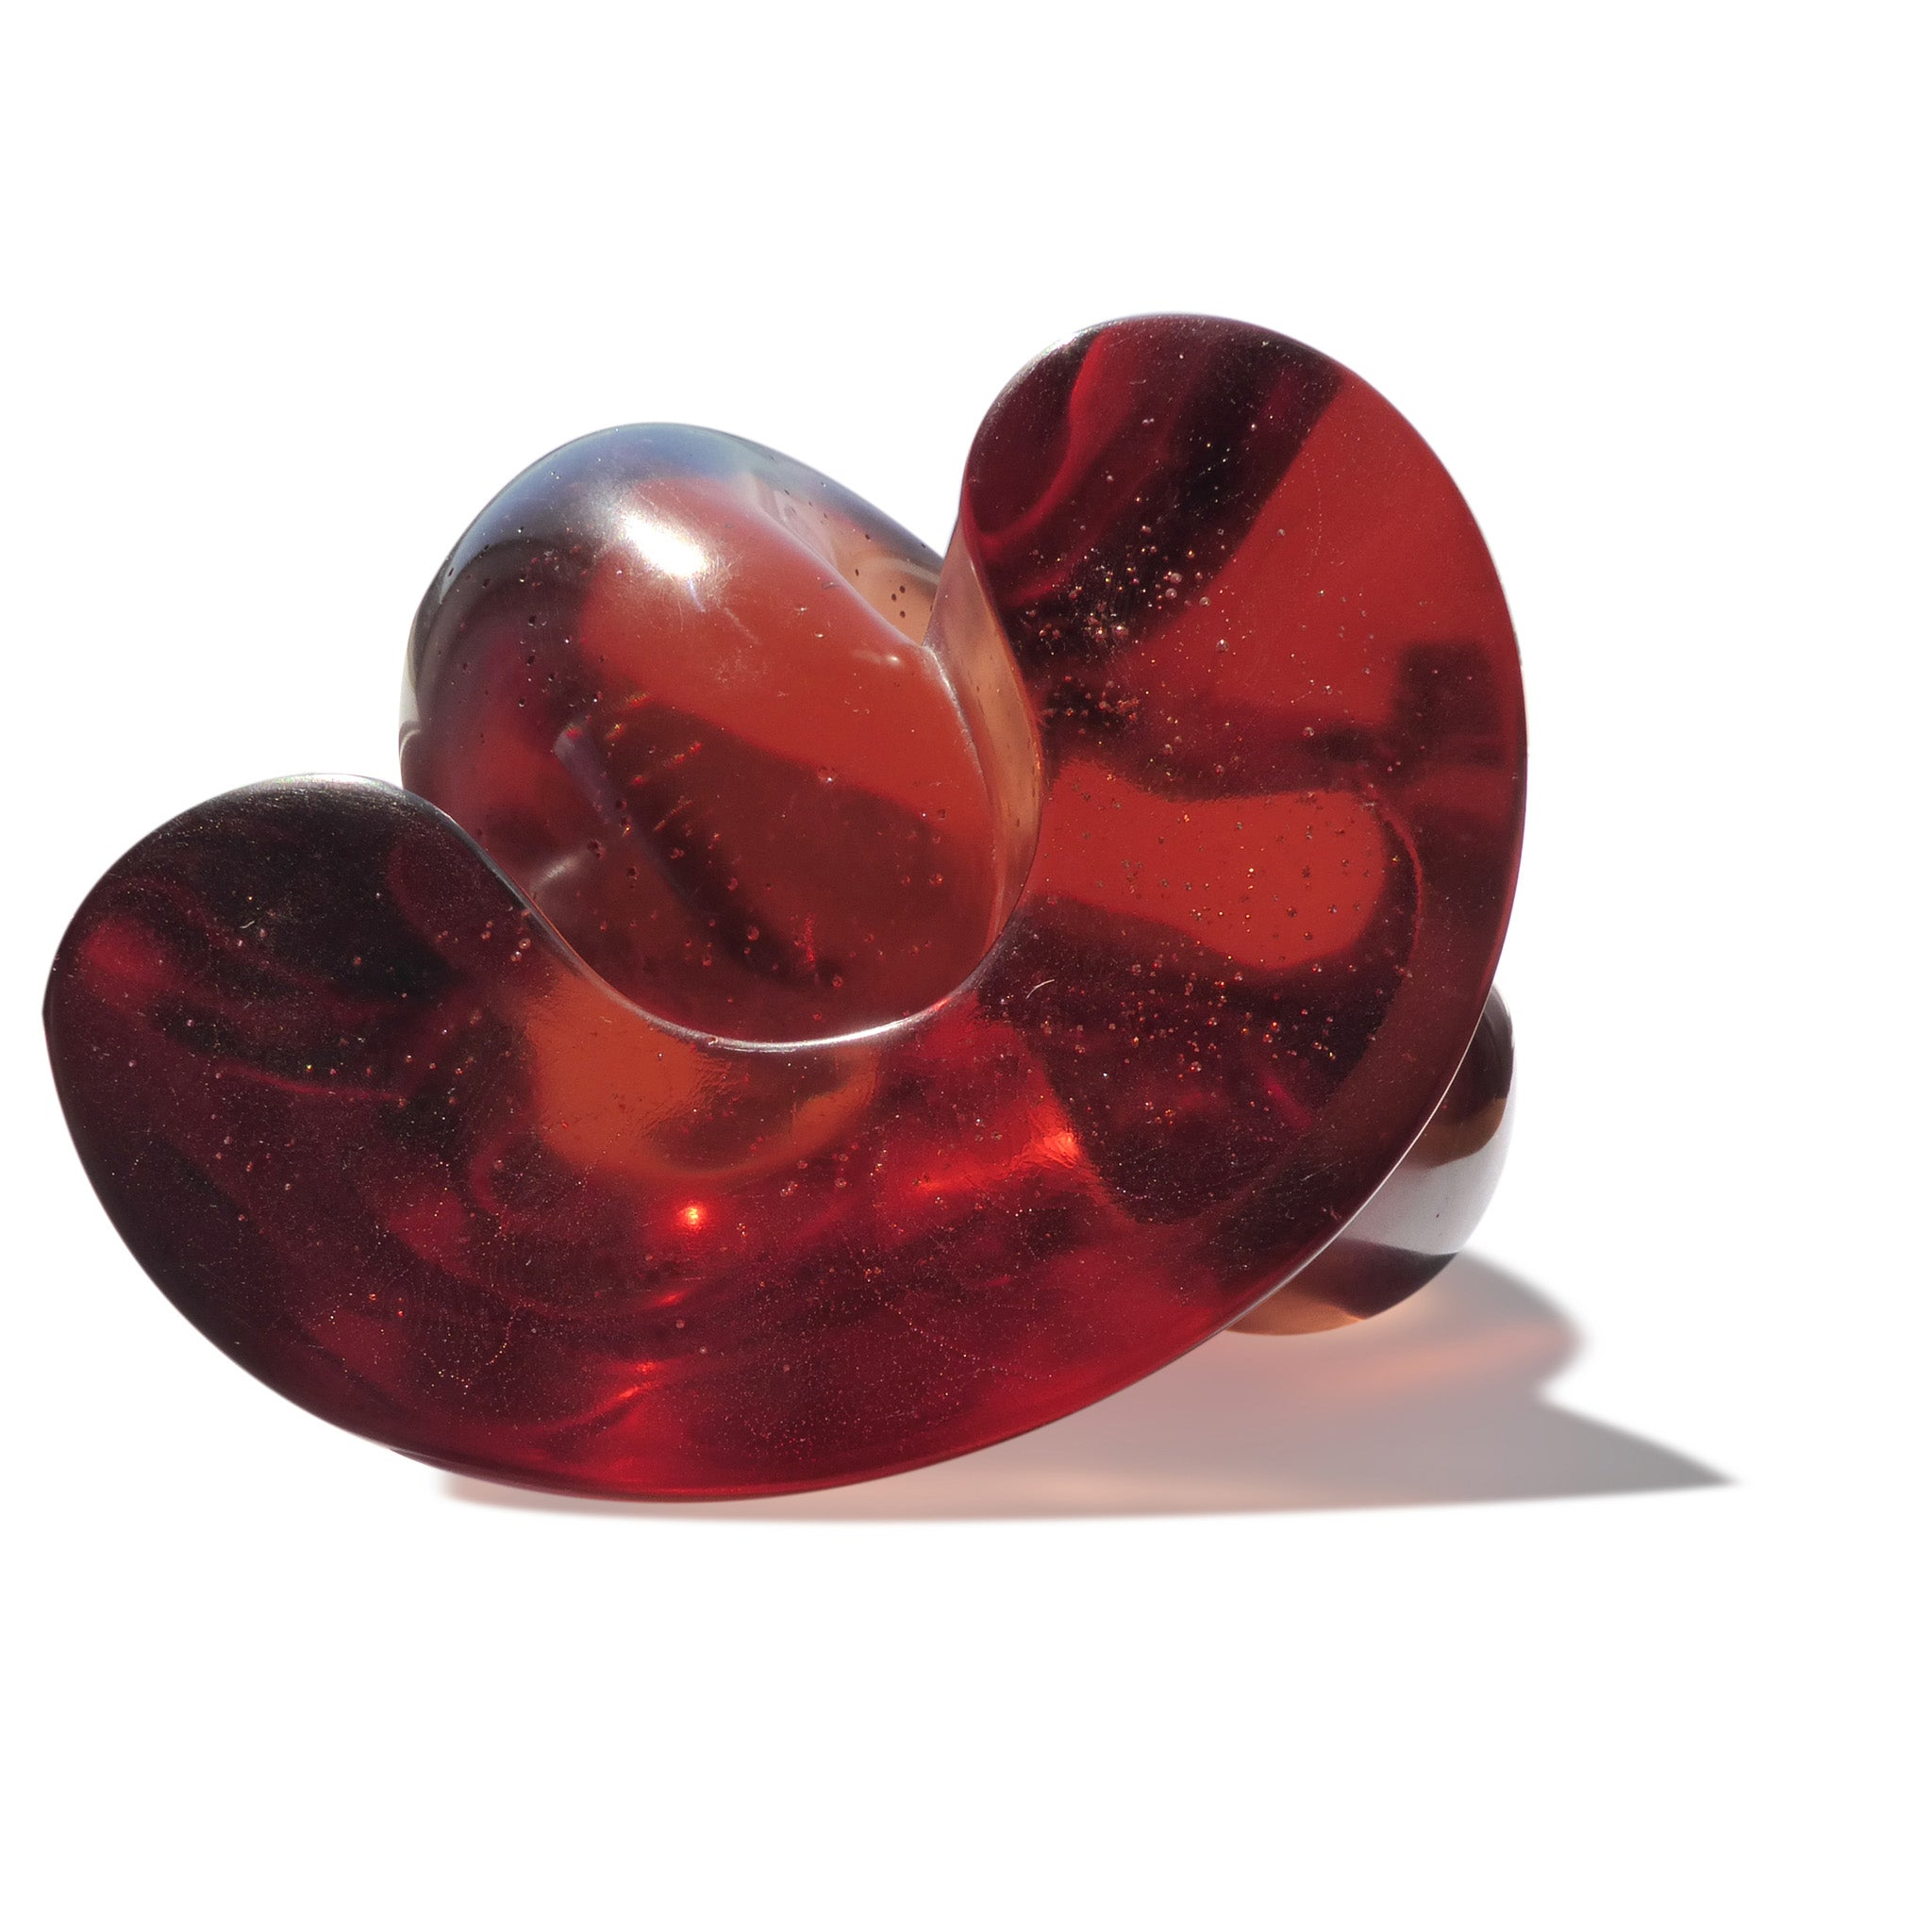 Abstract polished cast glass sculpture of red blood cells by Stephen Williams.